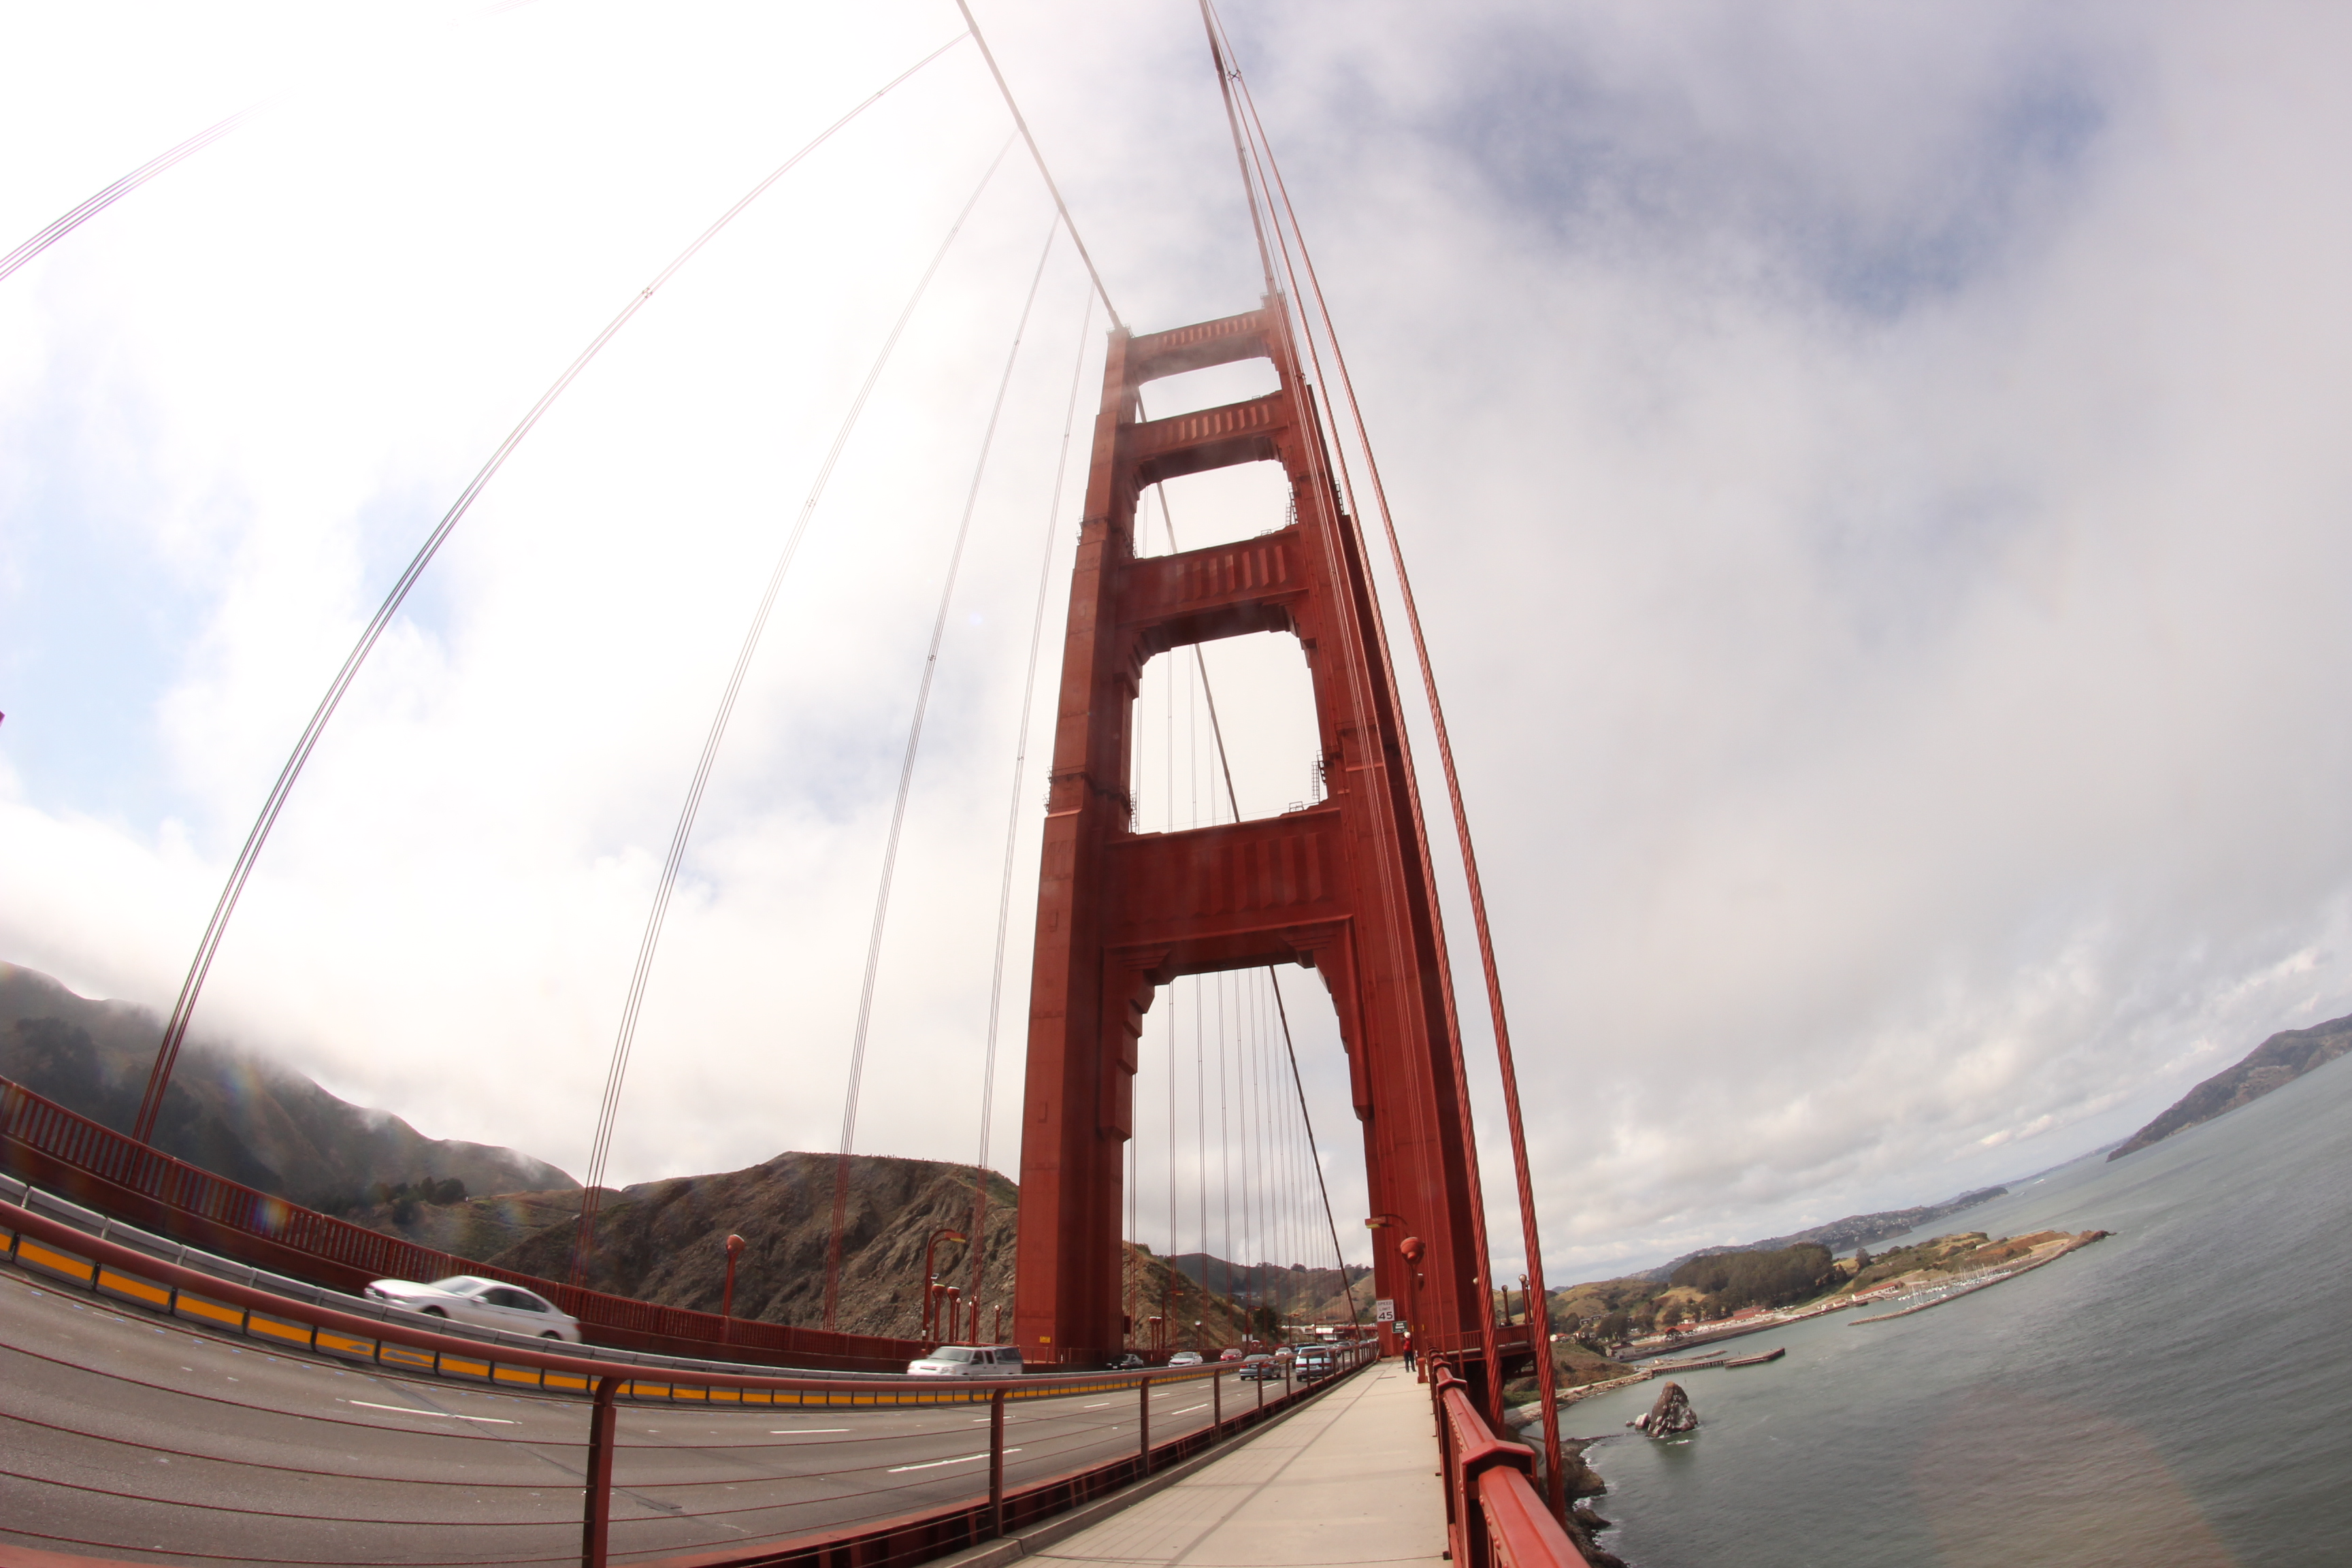 Golden Gate Bridge, symbol of San Francisco the venue of AAO 2015